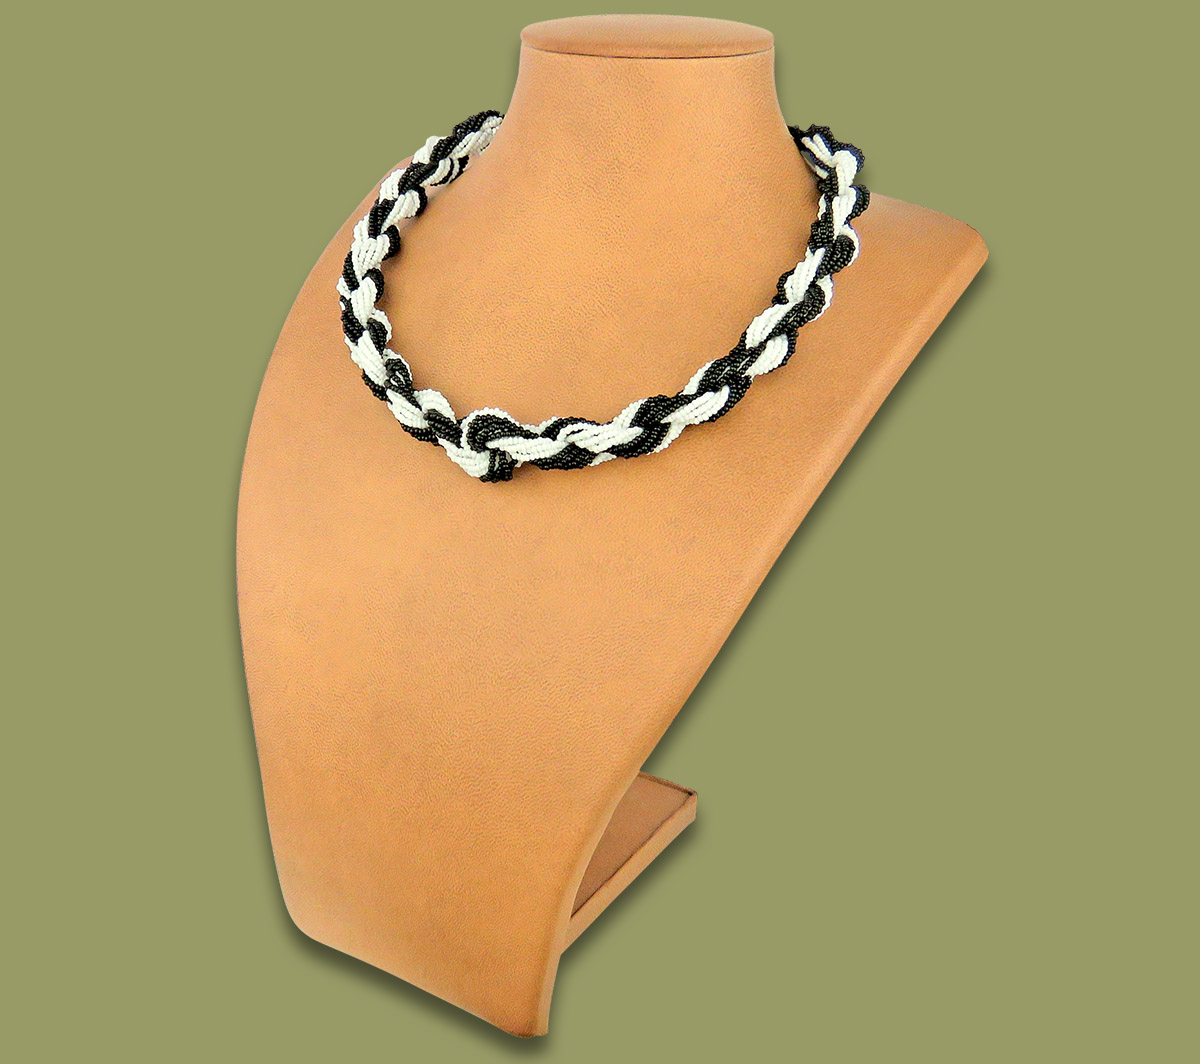 African Beaded Necklace Khanyo Black White